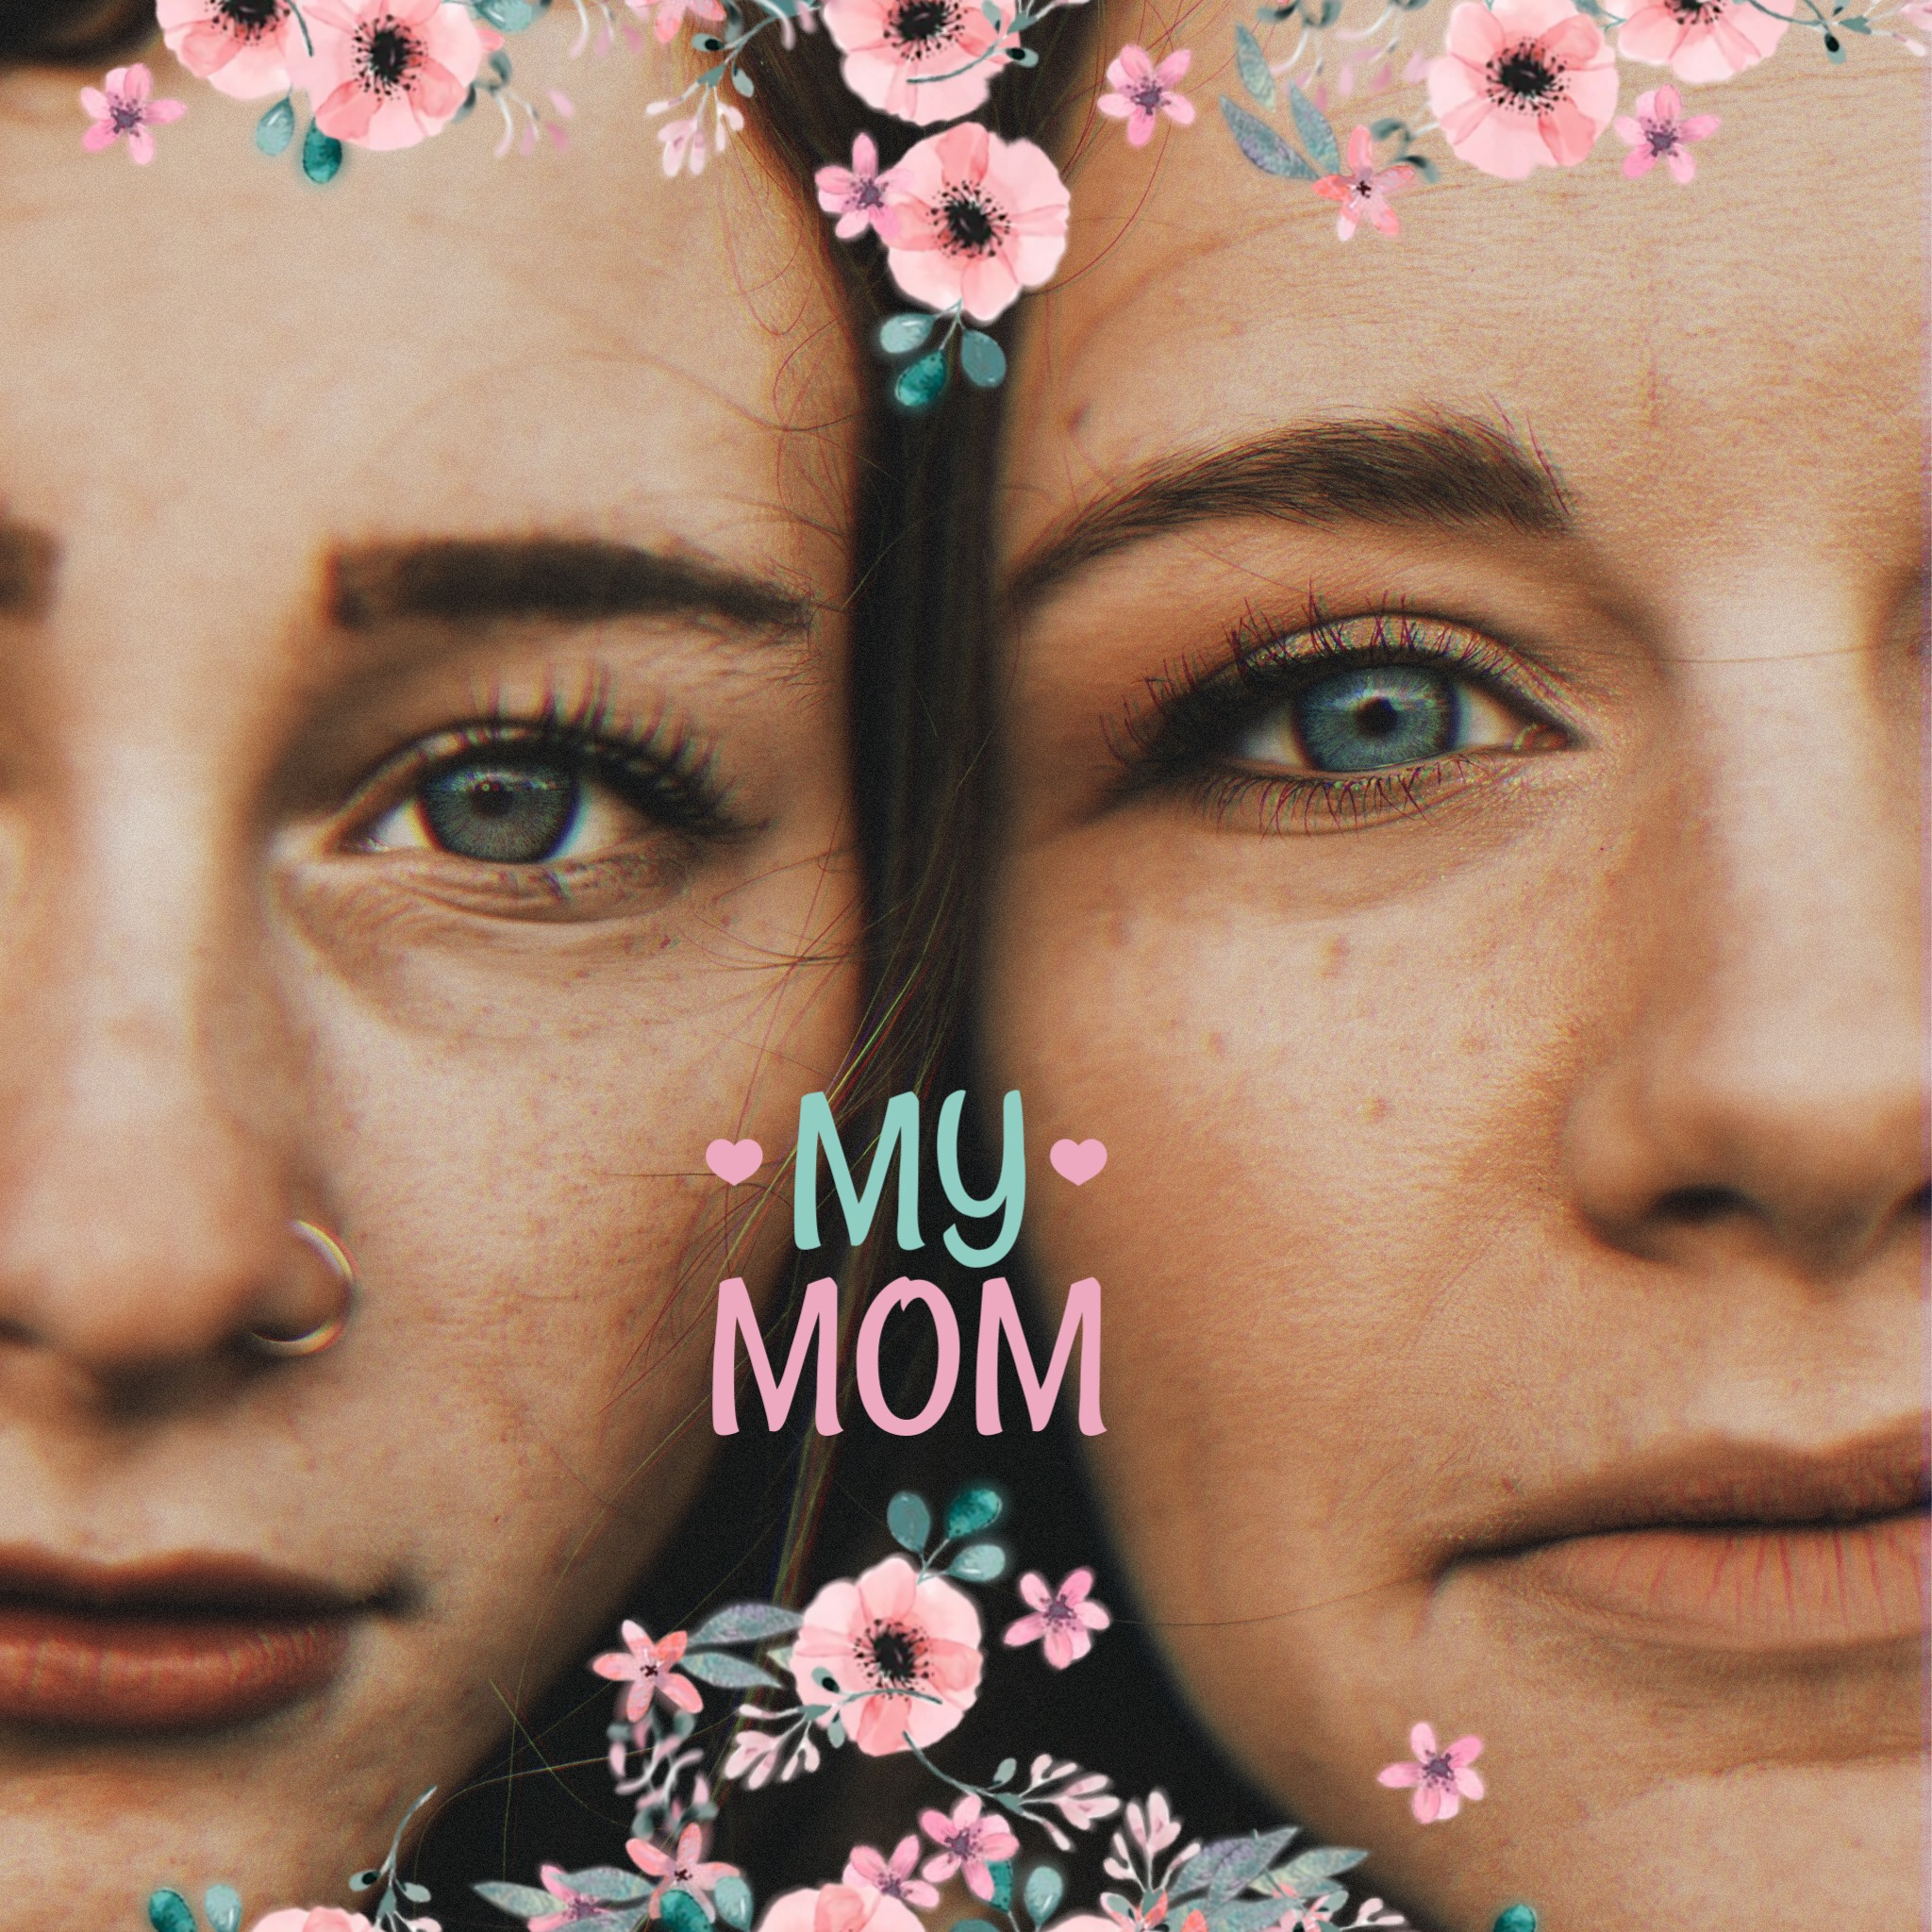 Mother, daughter portrait picture